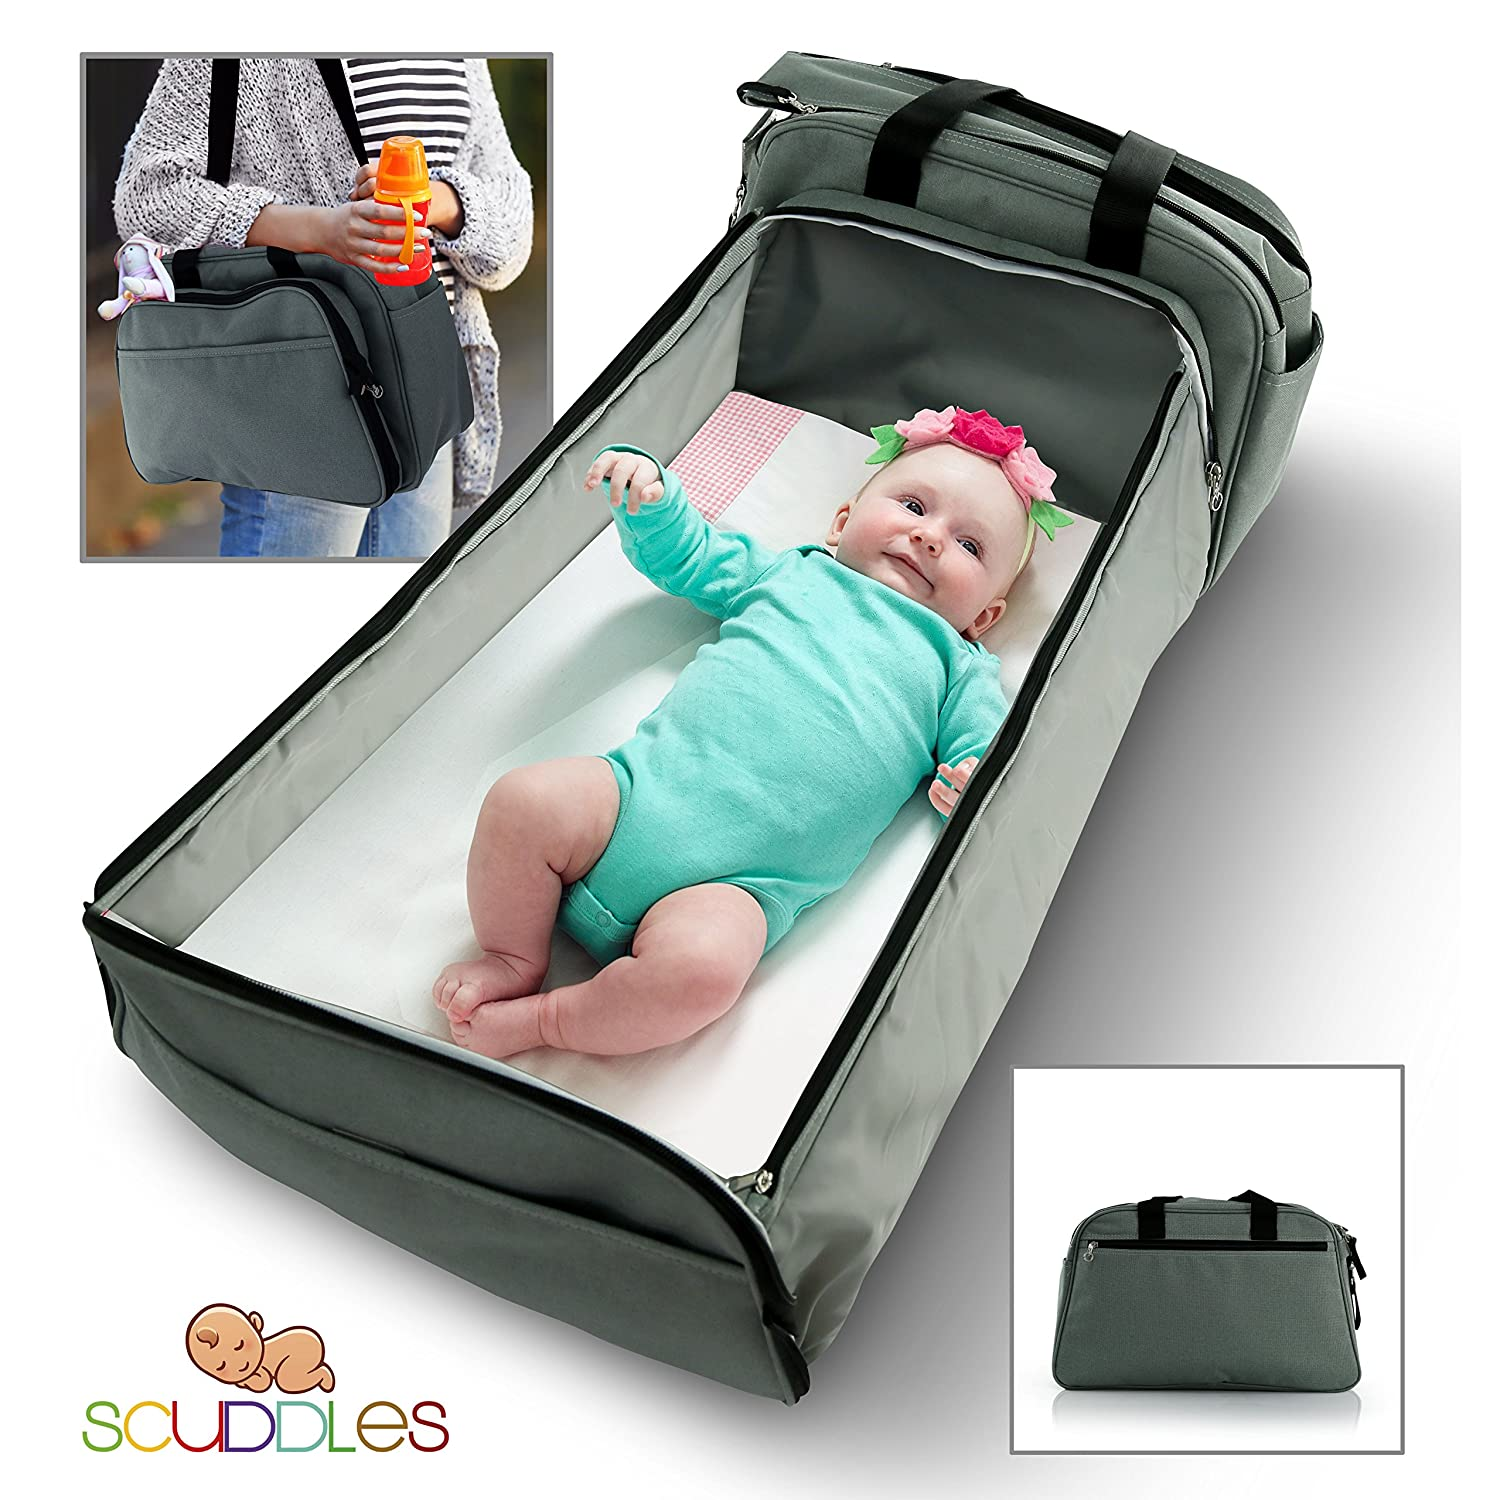 Scuddles Portable 3 in 1 Organizer Tote Bag - Toddler Travel Size Bassinet with Foldable Crib Pad Mattress & Diaper Changing Station - Gender Nuetral Color for Mom Dad Baby Girl or Boy Sound Around SC-FDB-02